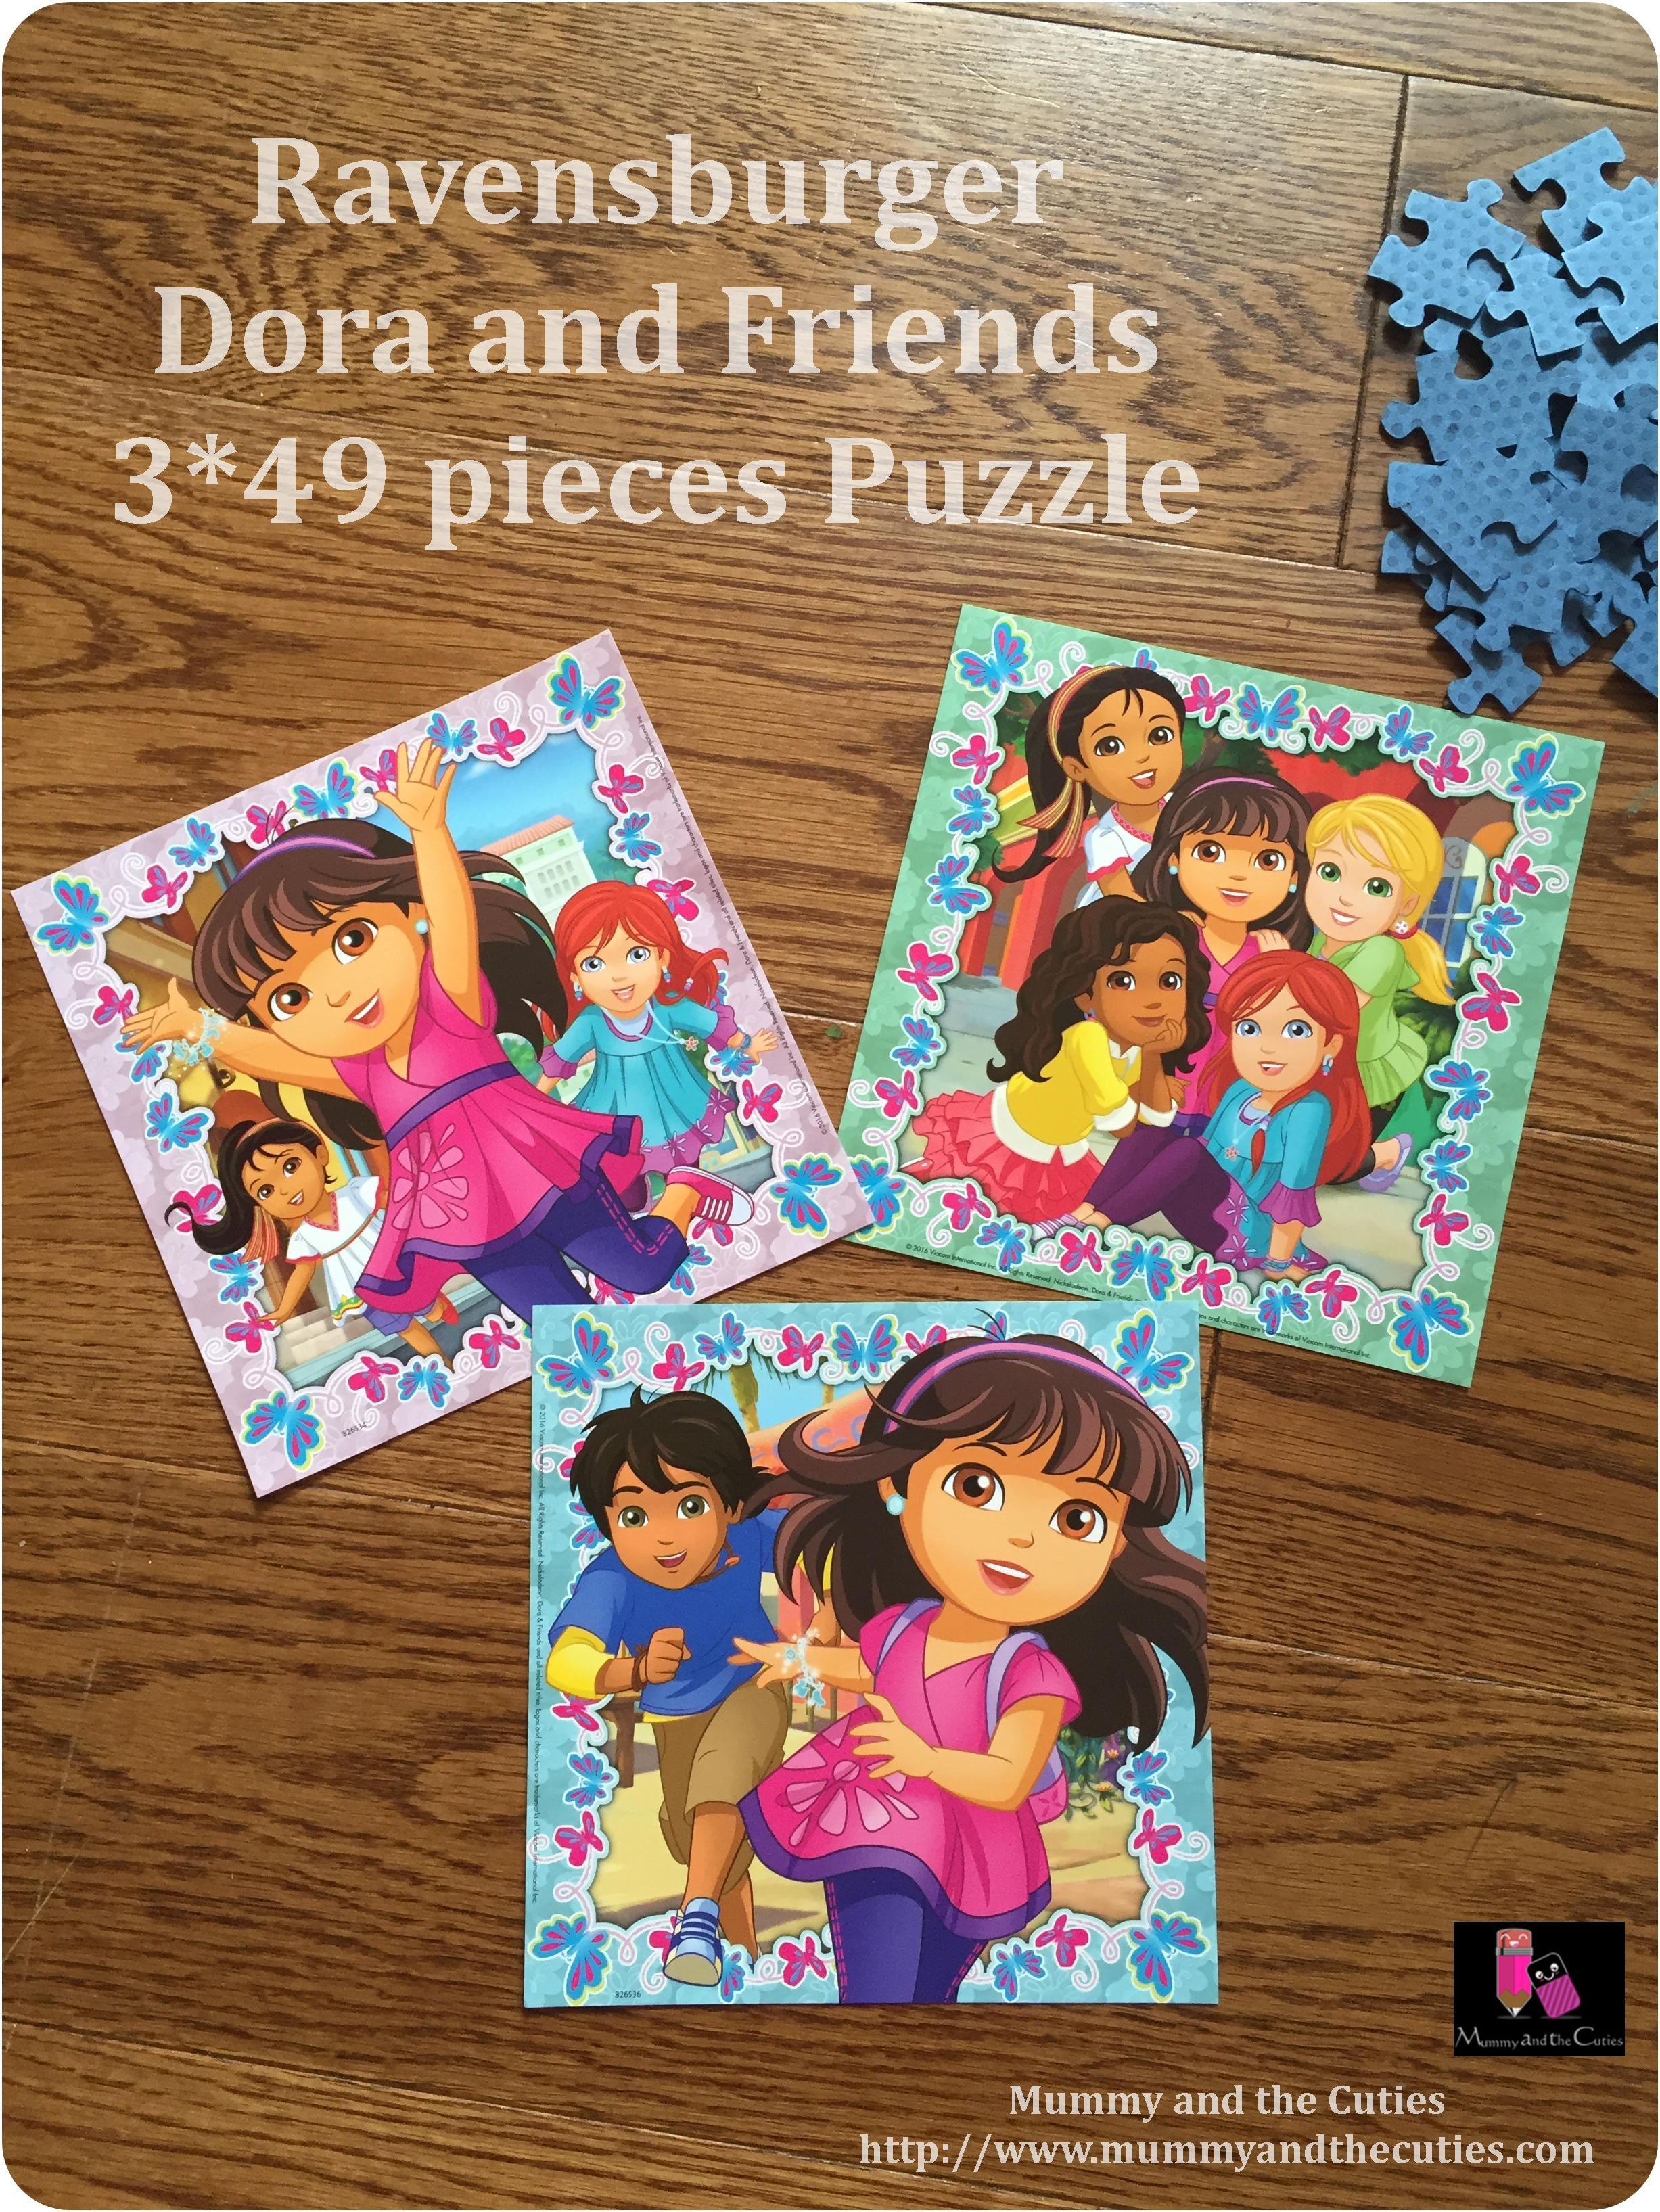 Ravensburger – Dora and Friends Puzzle Review